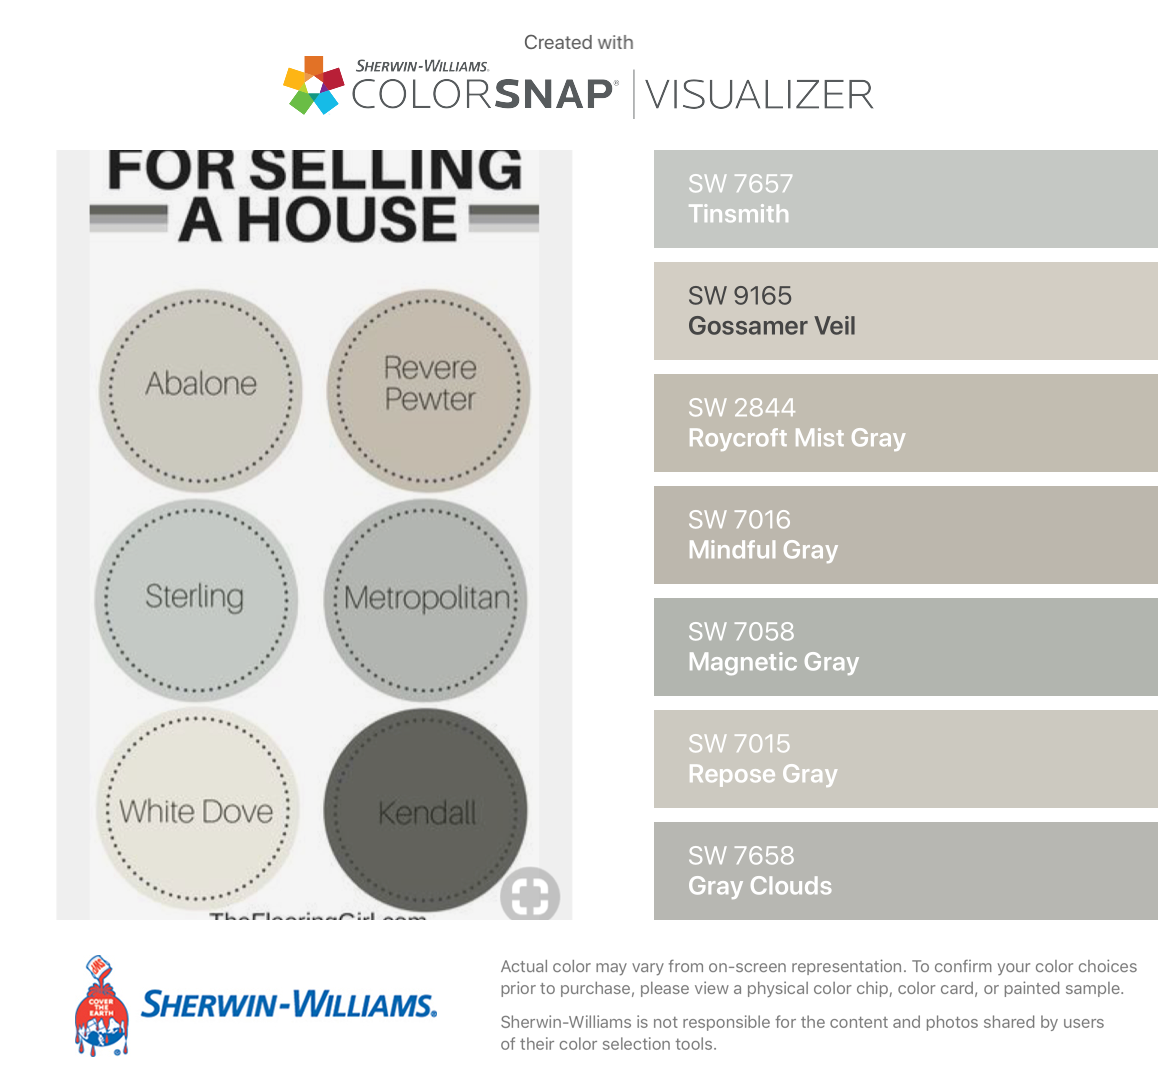 I Found These Colors With Colorsnap Visualizer For Iphone By Sherwin Williams Tins Interior Paint Colors For Living Room Mindful Gray Sherwin Williams Colors